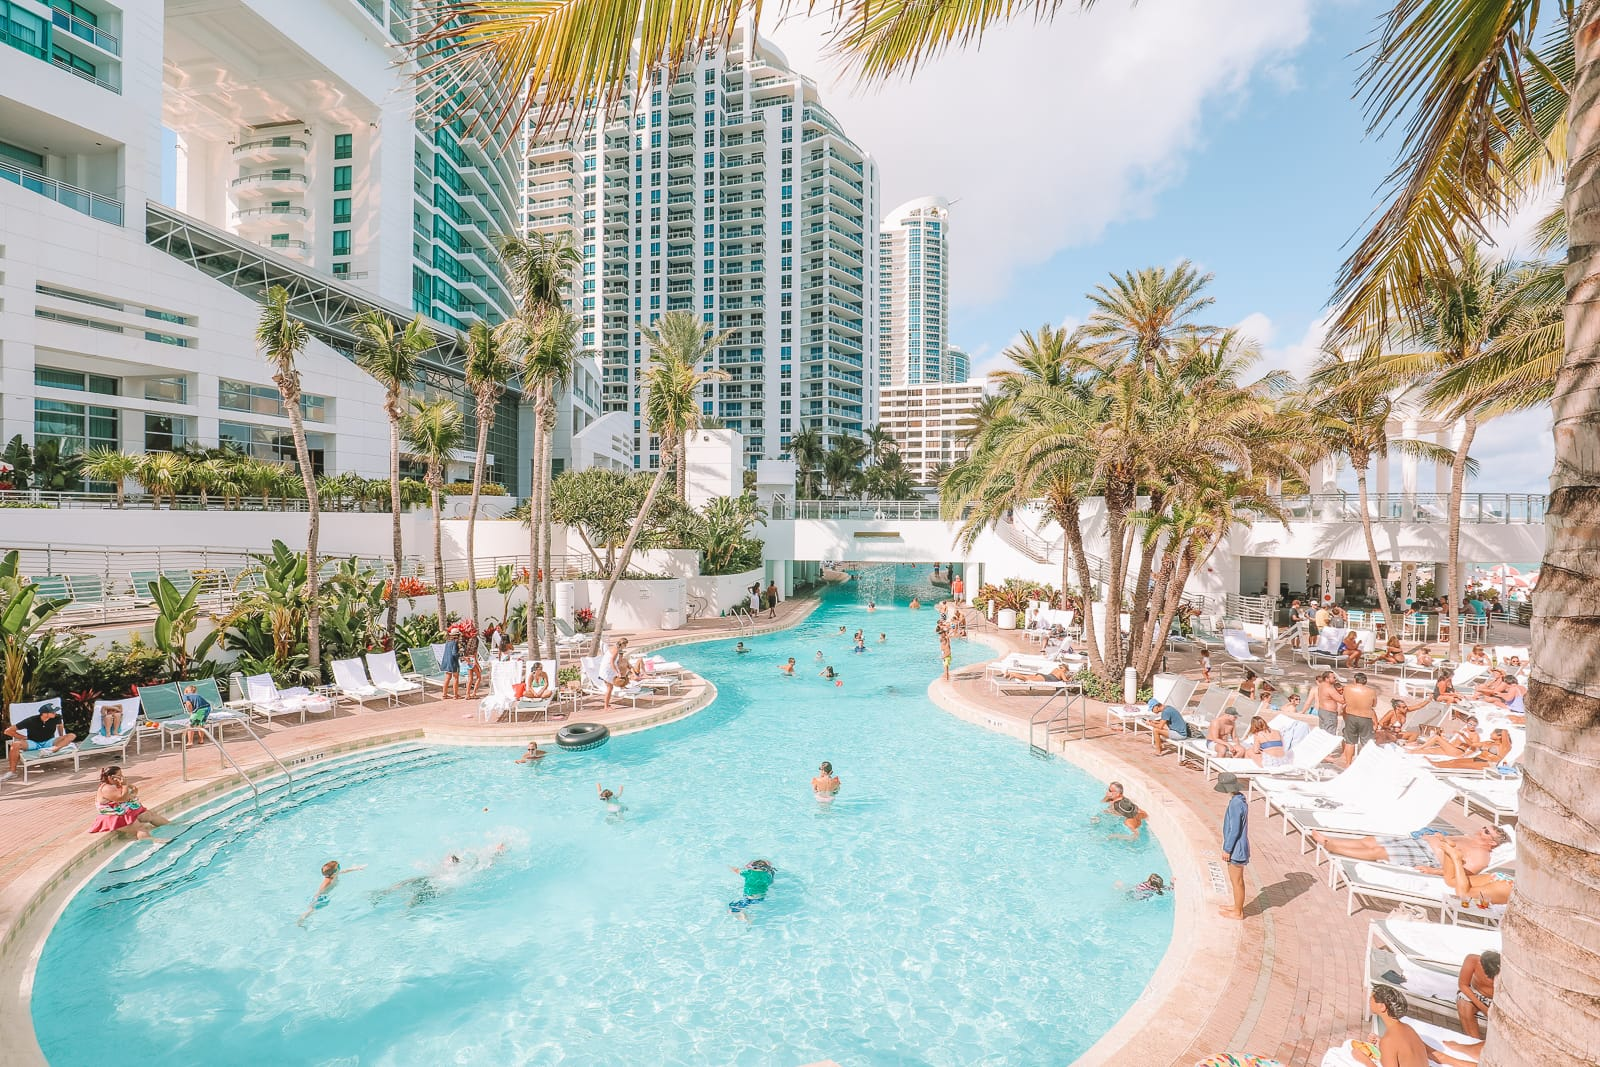 The Perfect Lazy Day In Fort Lauderdale, Florida (33)